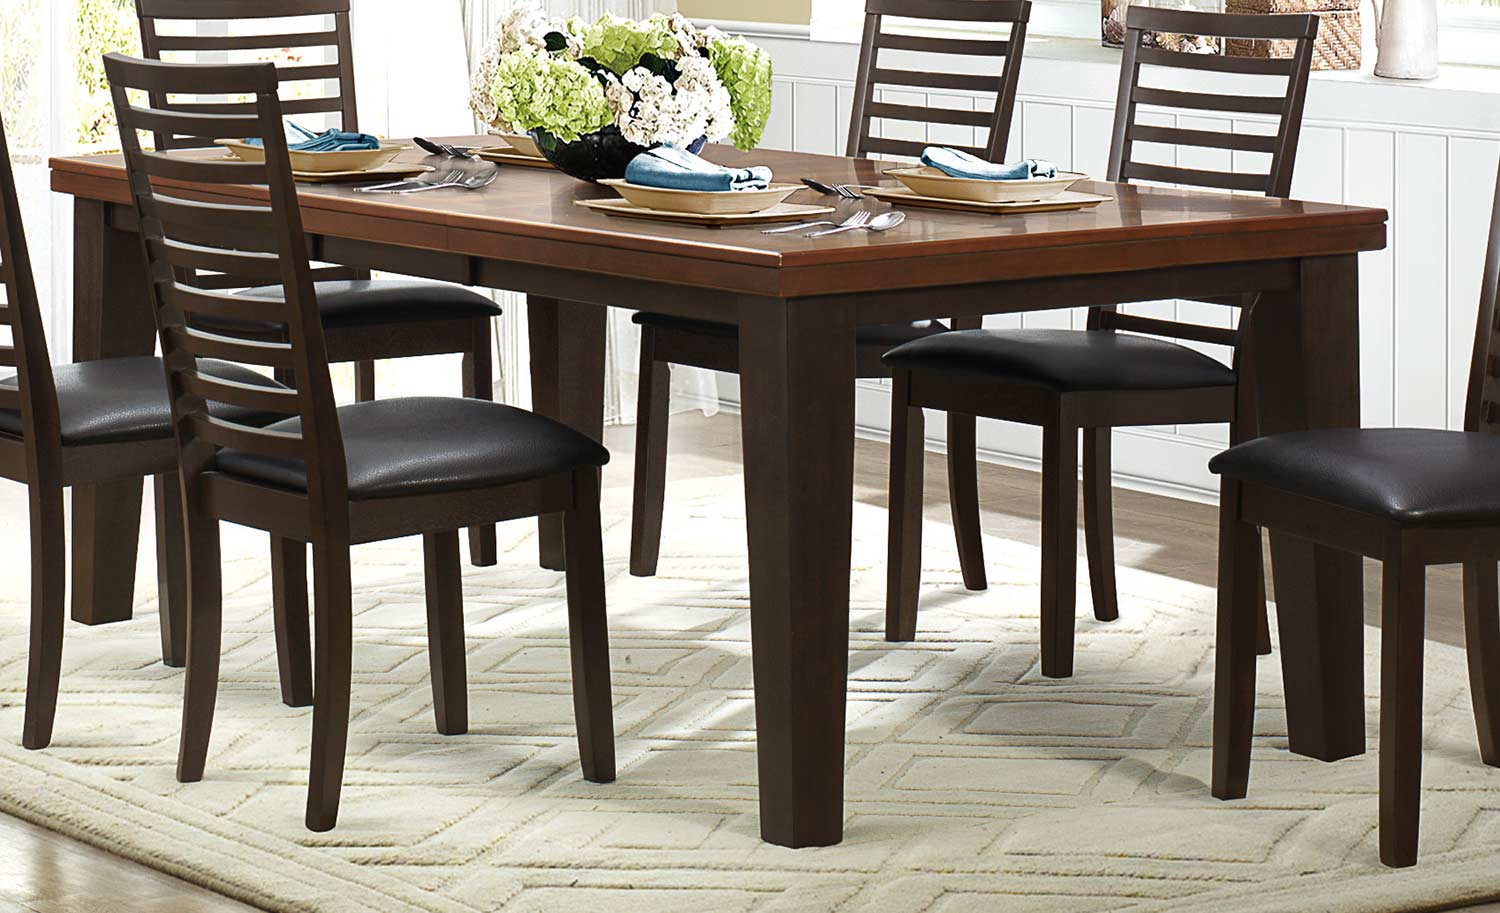 homelegance walsh dining table two tone 5109 82 at. Black Bedroom Furniture Sets. Home Design Ideas